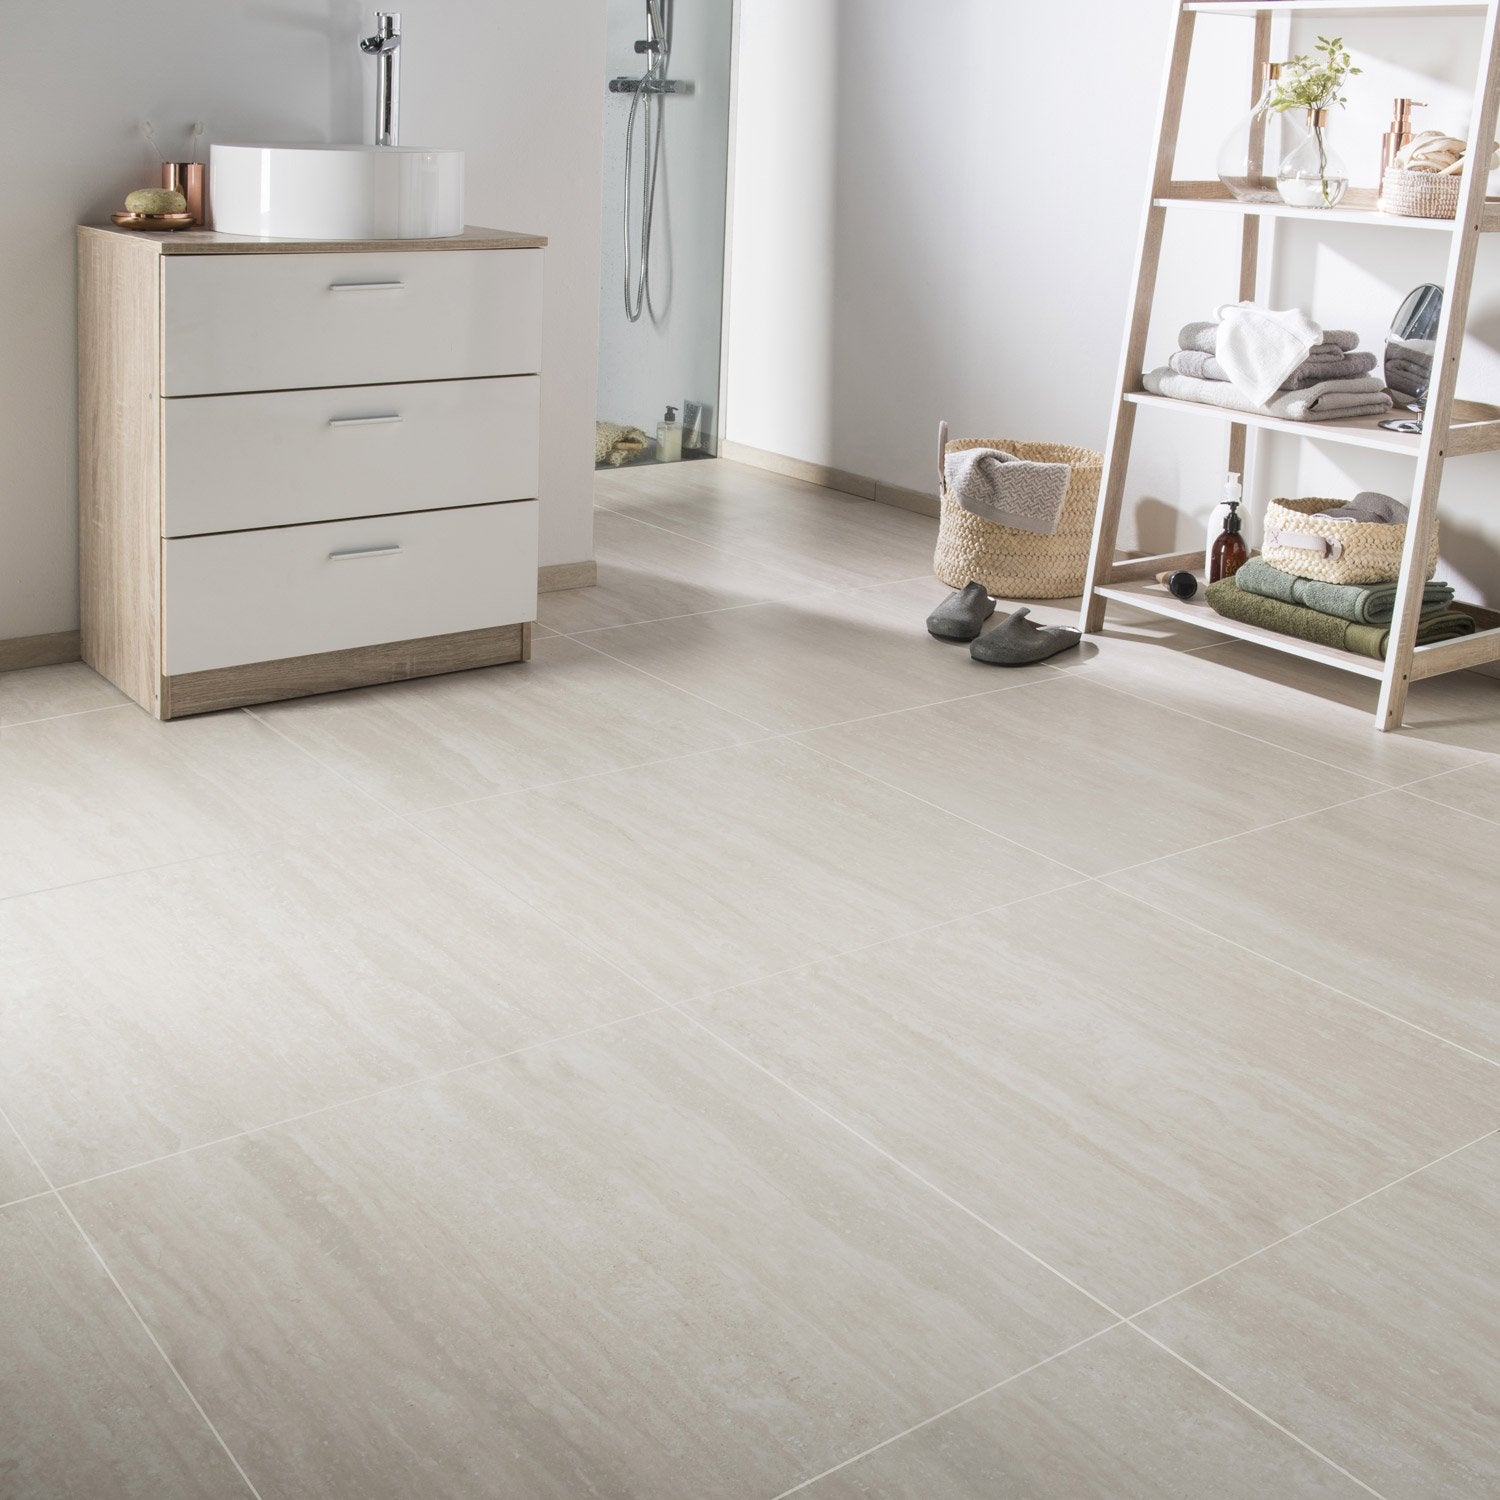 Carrelage marbre salon for Carrelage 60 60